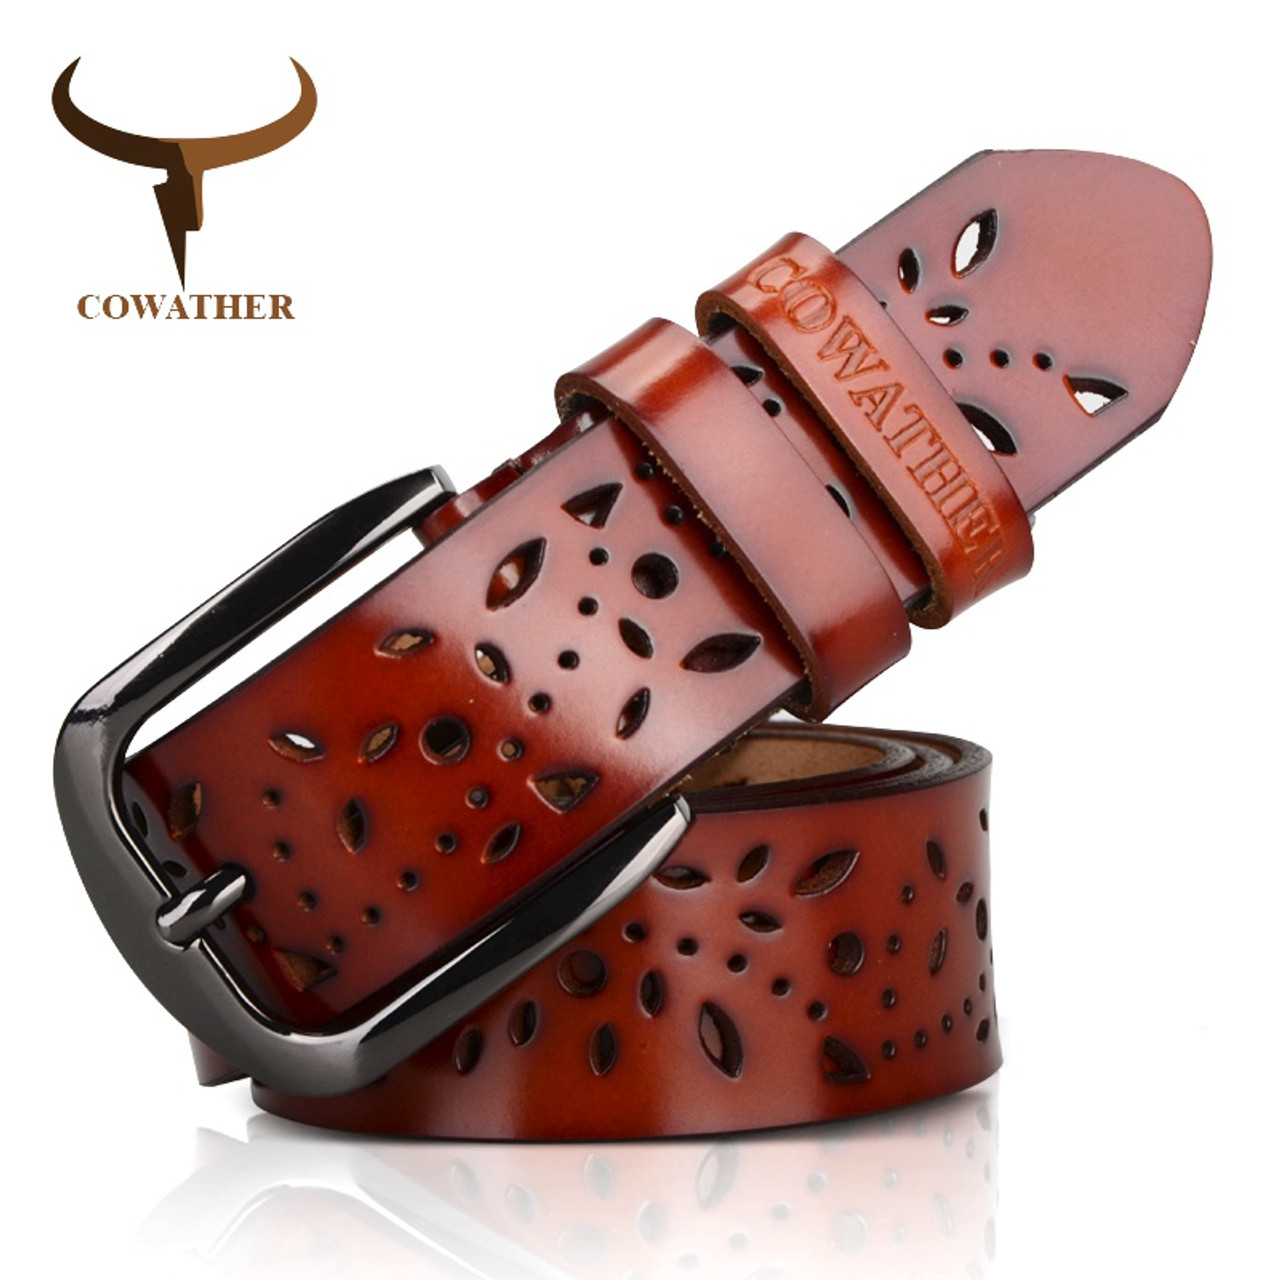 Apparel Accessories Clever New Cow Leather Belts Men Vintage Pin Buckle Male Waistband Genuine Leather Men Belt Flower Pressed Strap Waist Belt For Jeans Goods Of Every Description Are Available